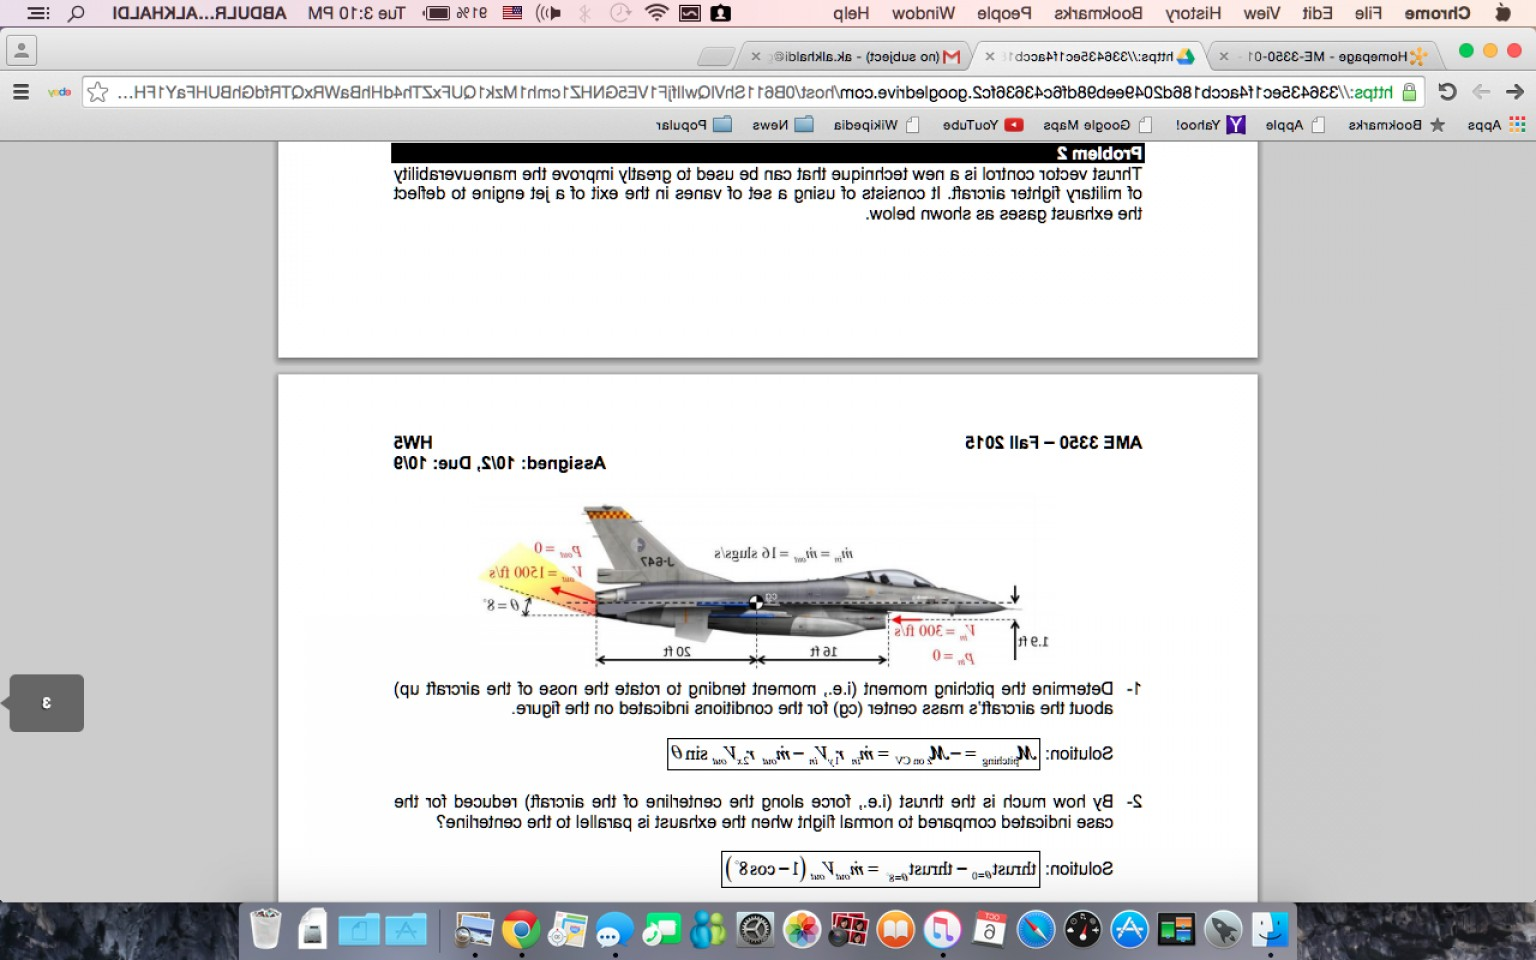 Thrust Vector Control: Thrust Vector Control New Technique Used Greatly Improve Maneuverability Military Fighter Q